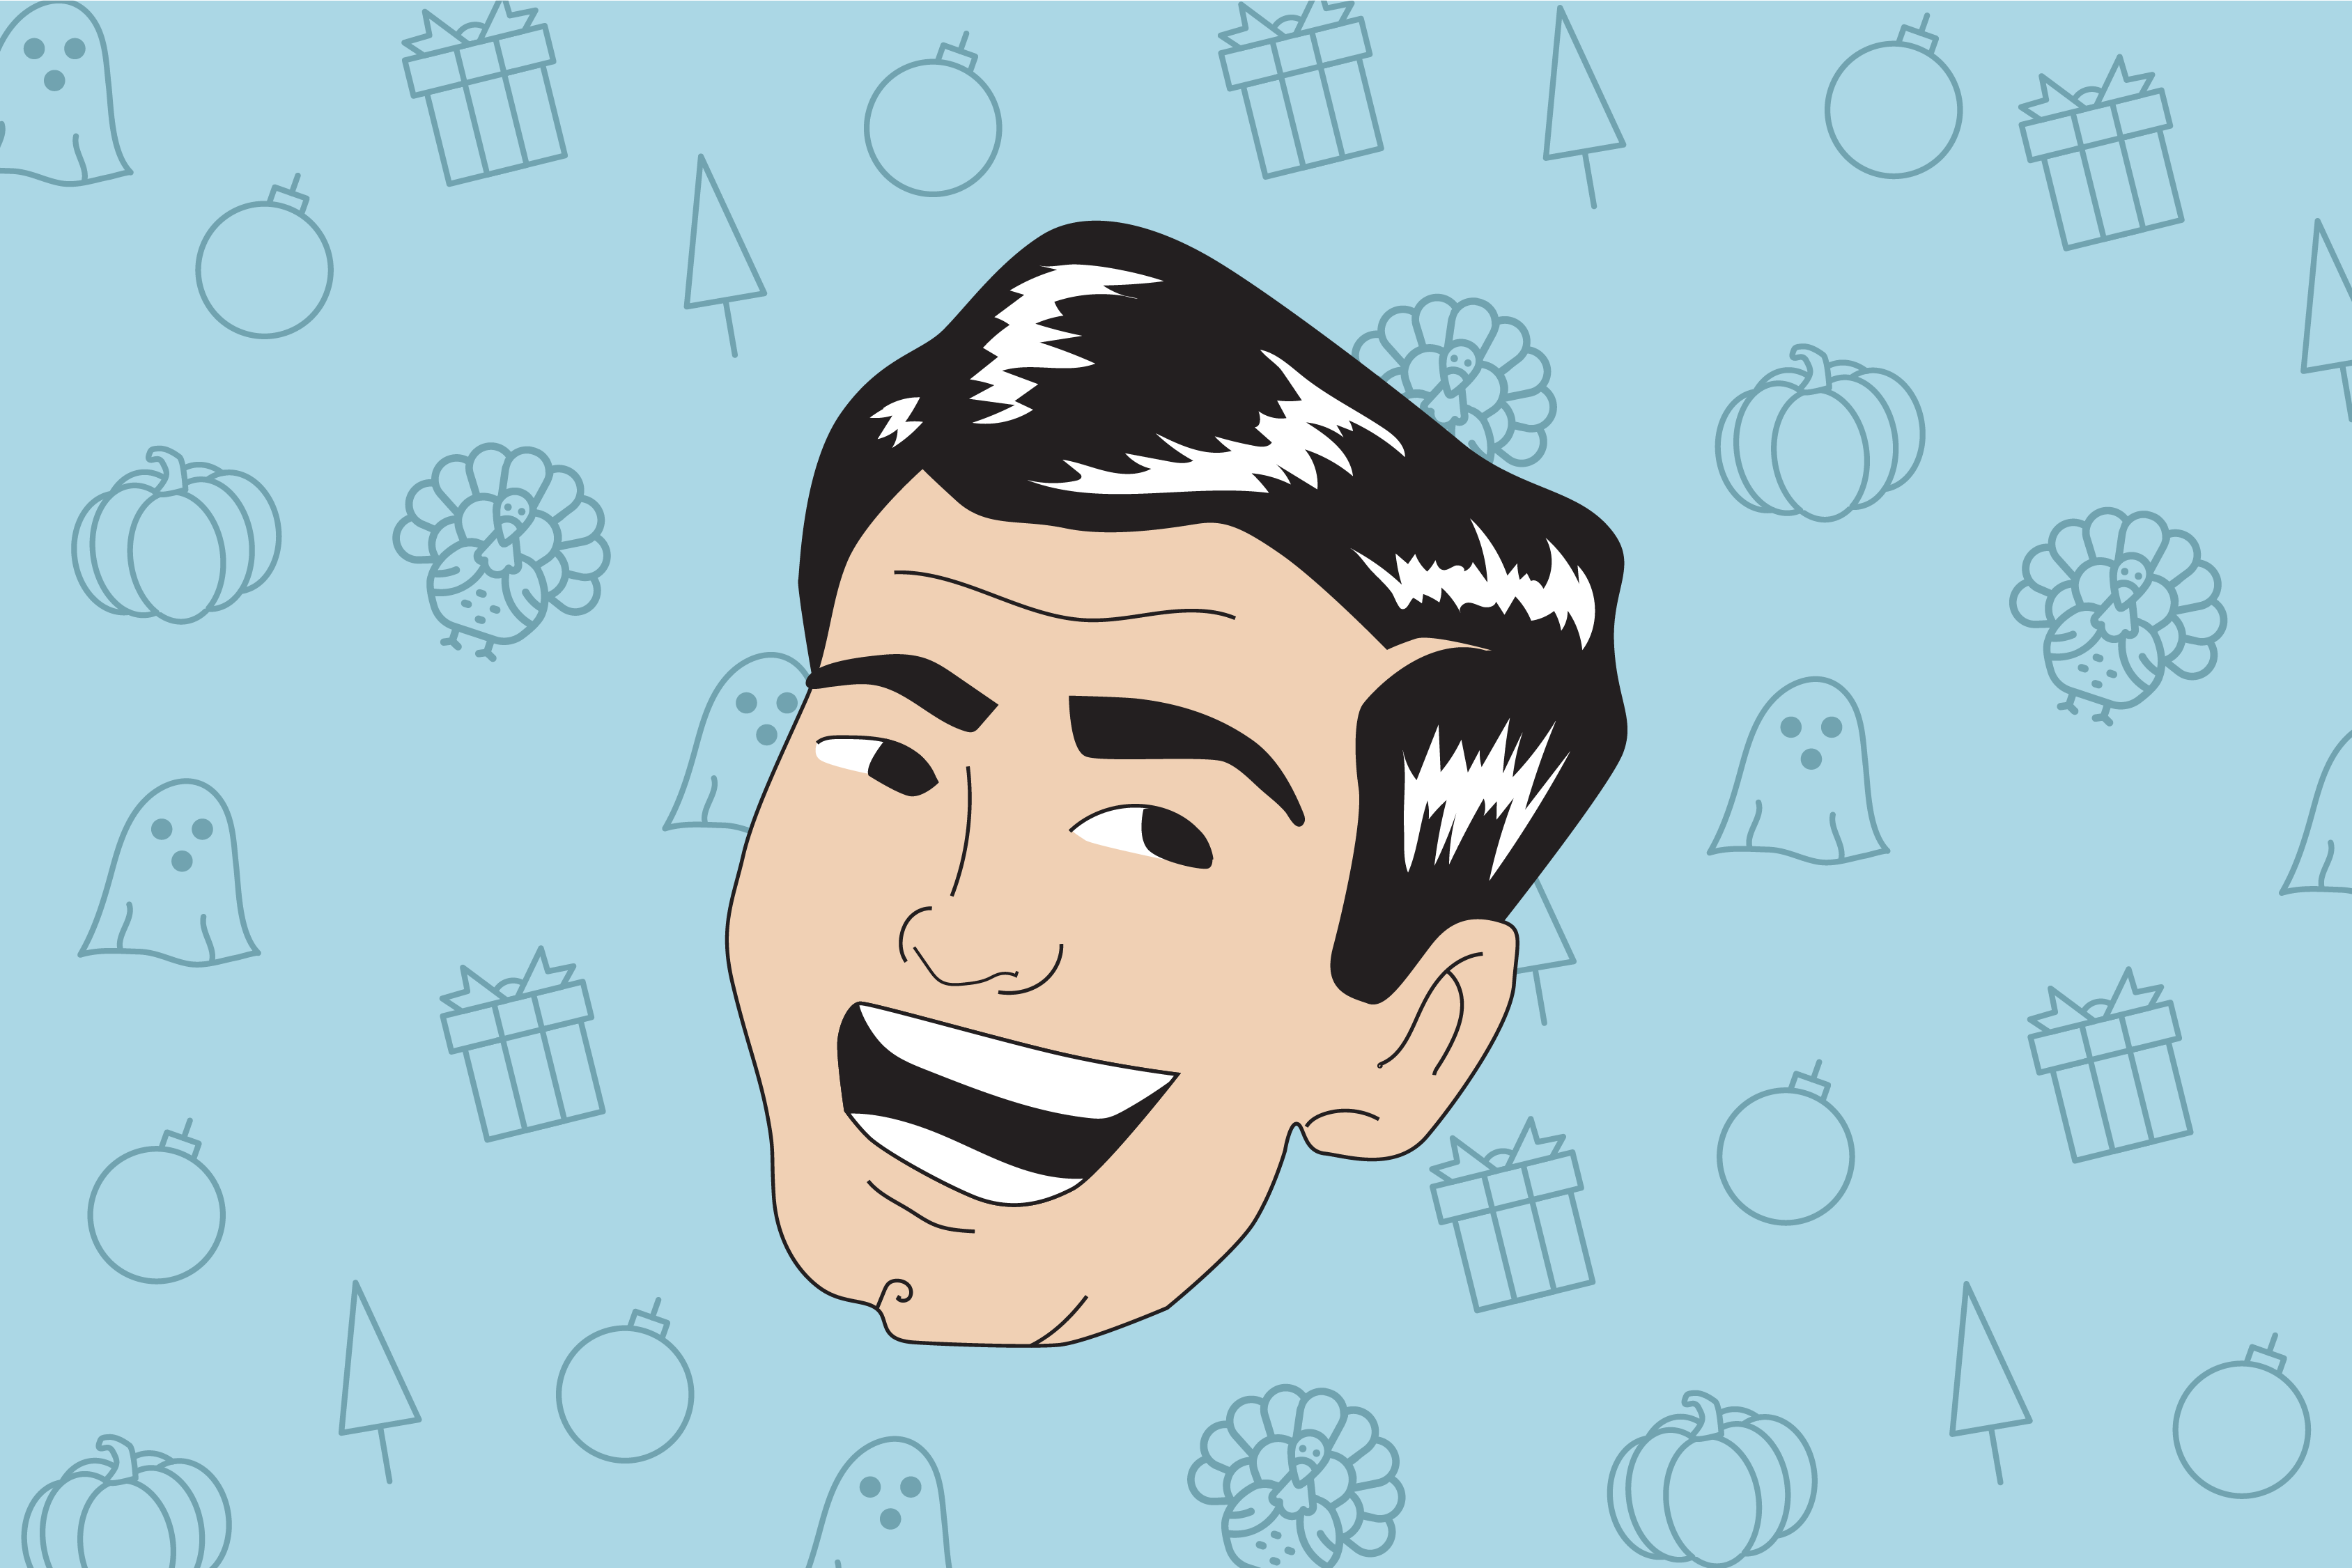 caricature of laughing dad on top of holiday icons